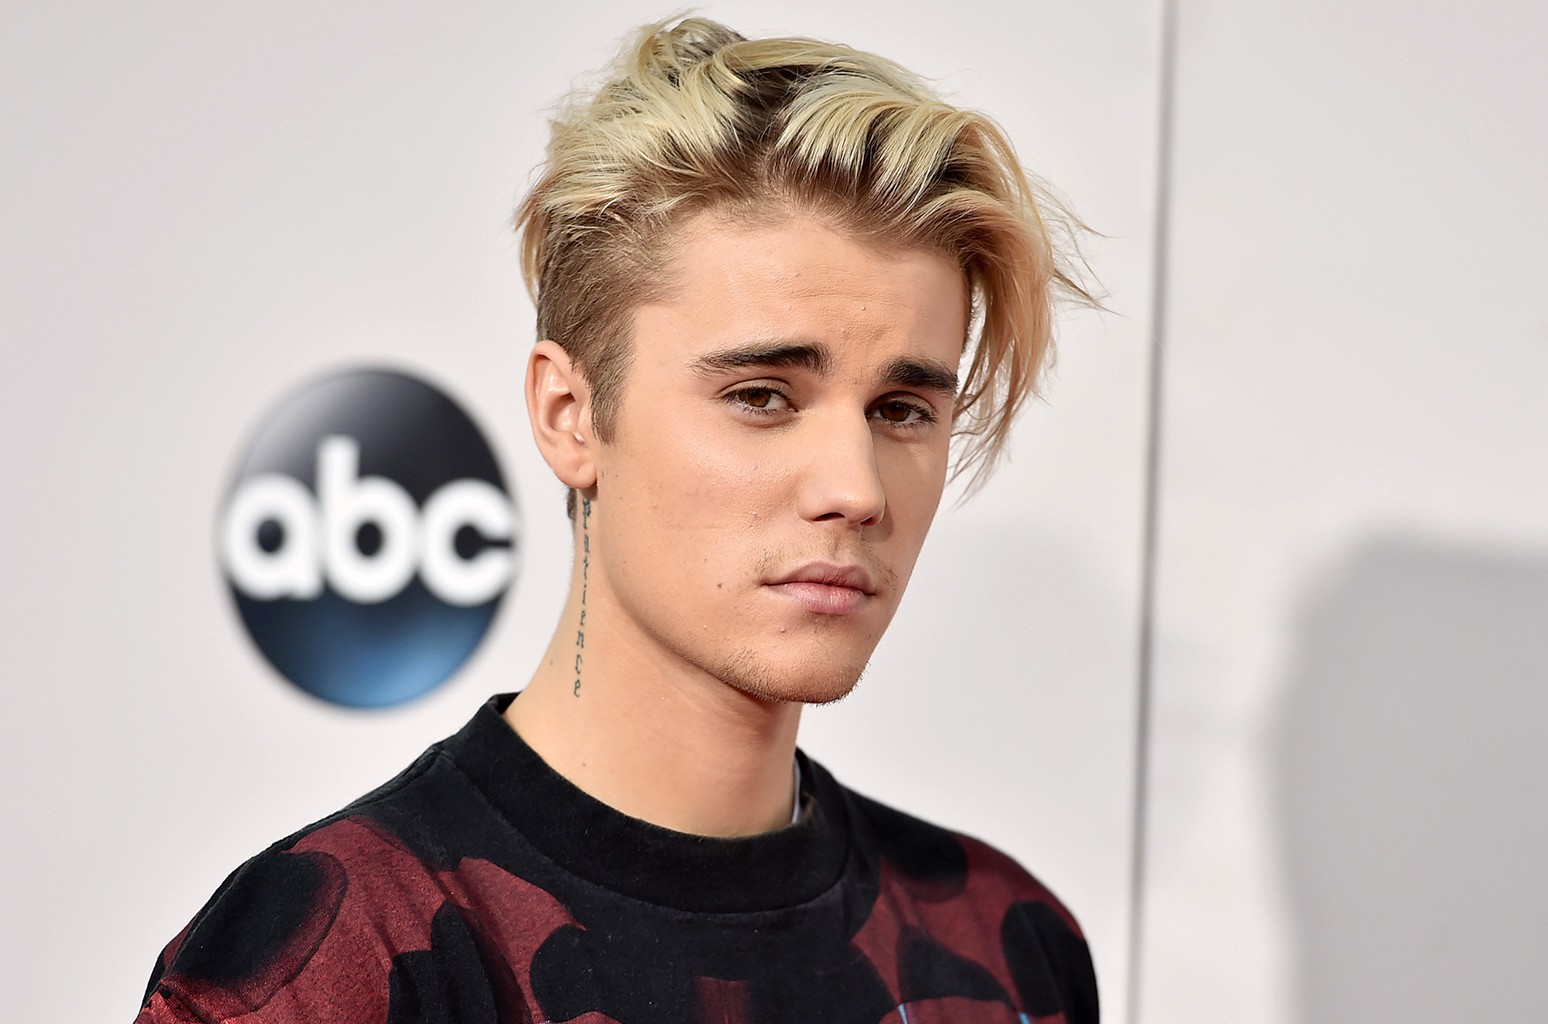 Justin Bieber arrives at the American Music Awards